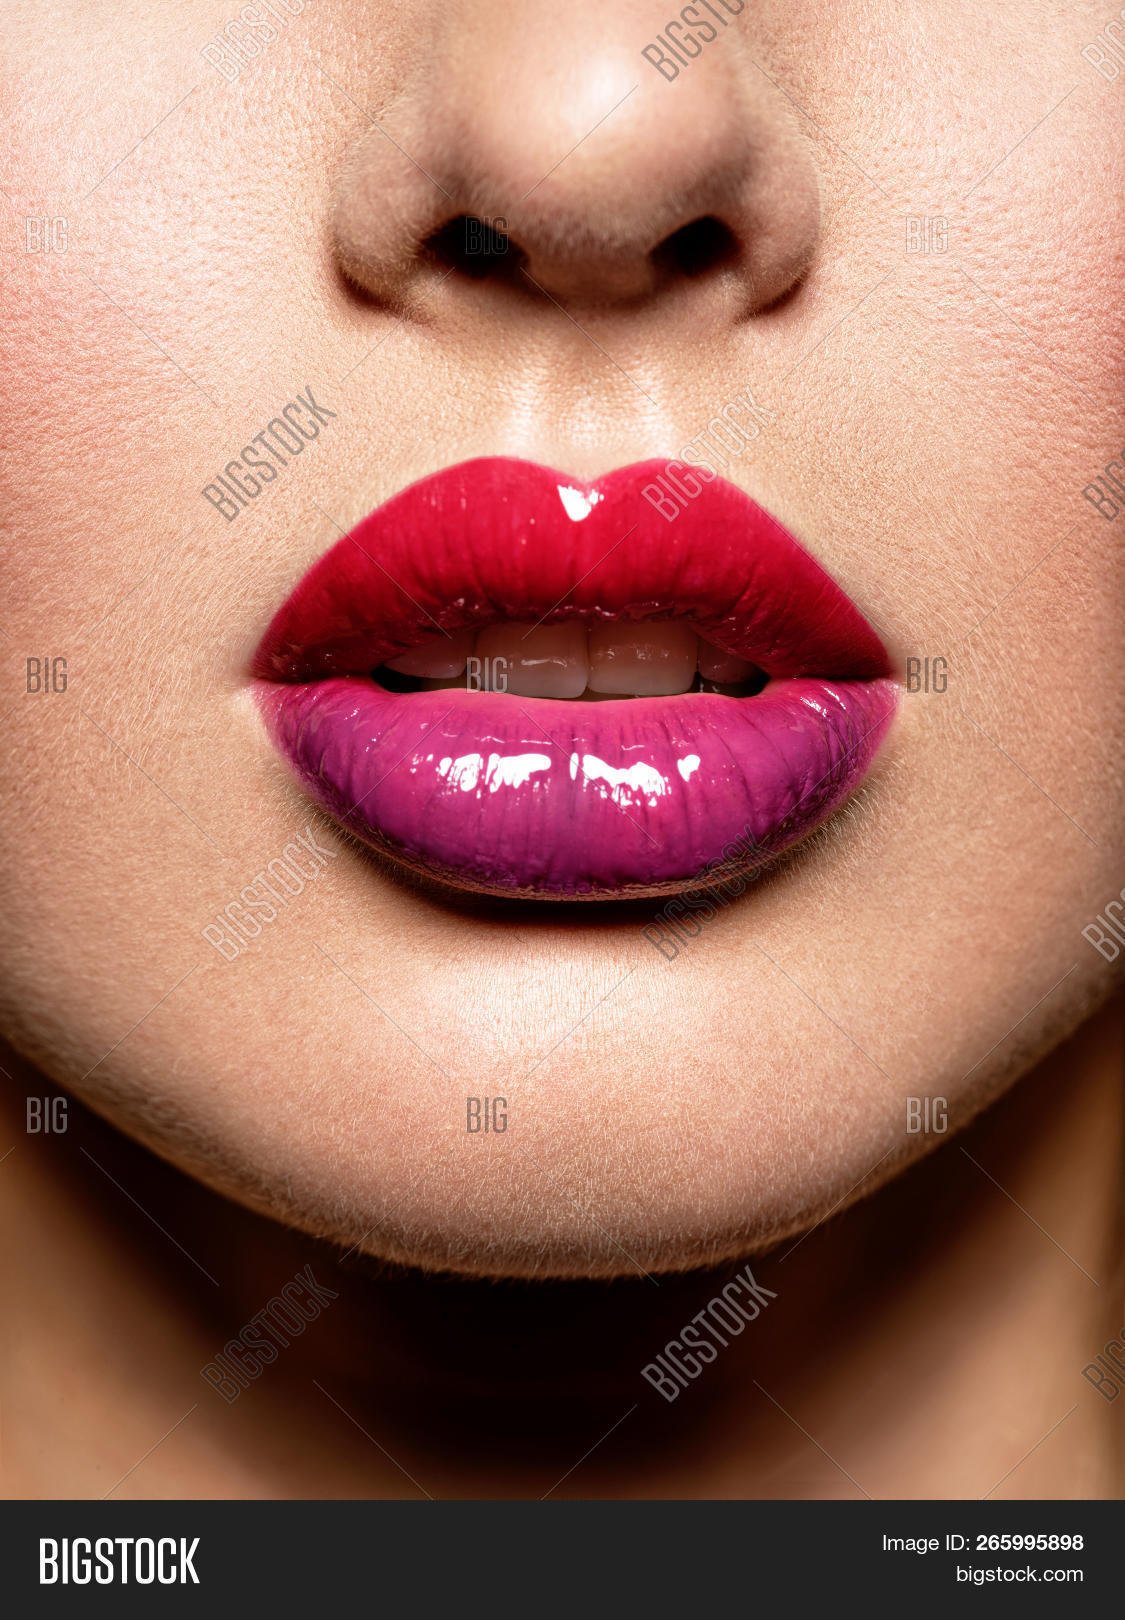 Close up view of beautiful woman lips with gloss lipstick. fashion makeup concept. Beauty